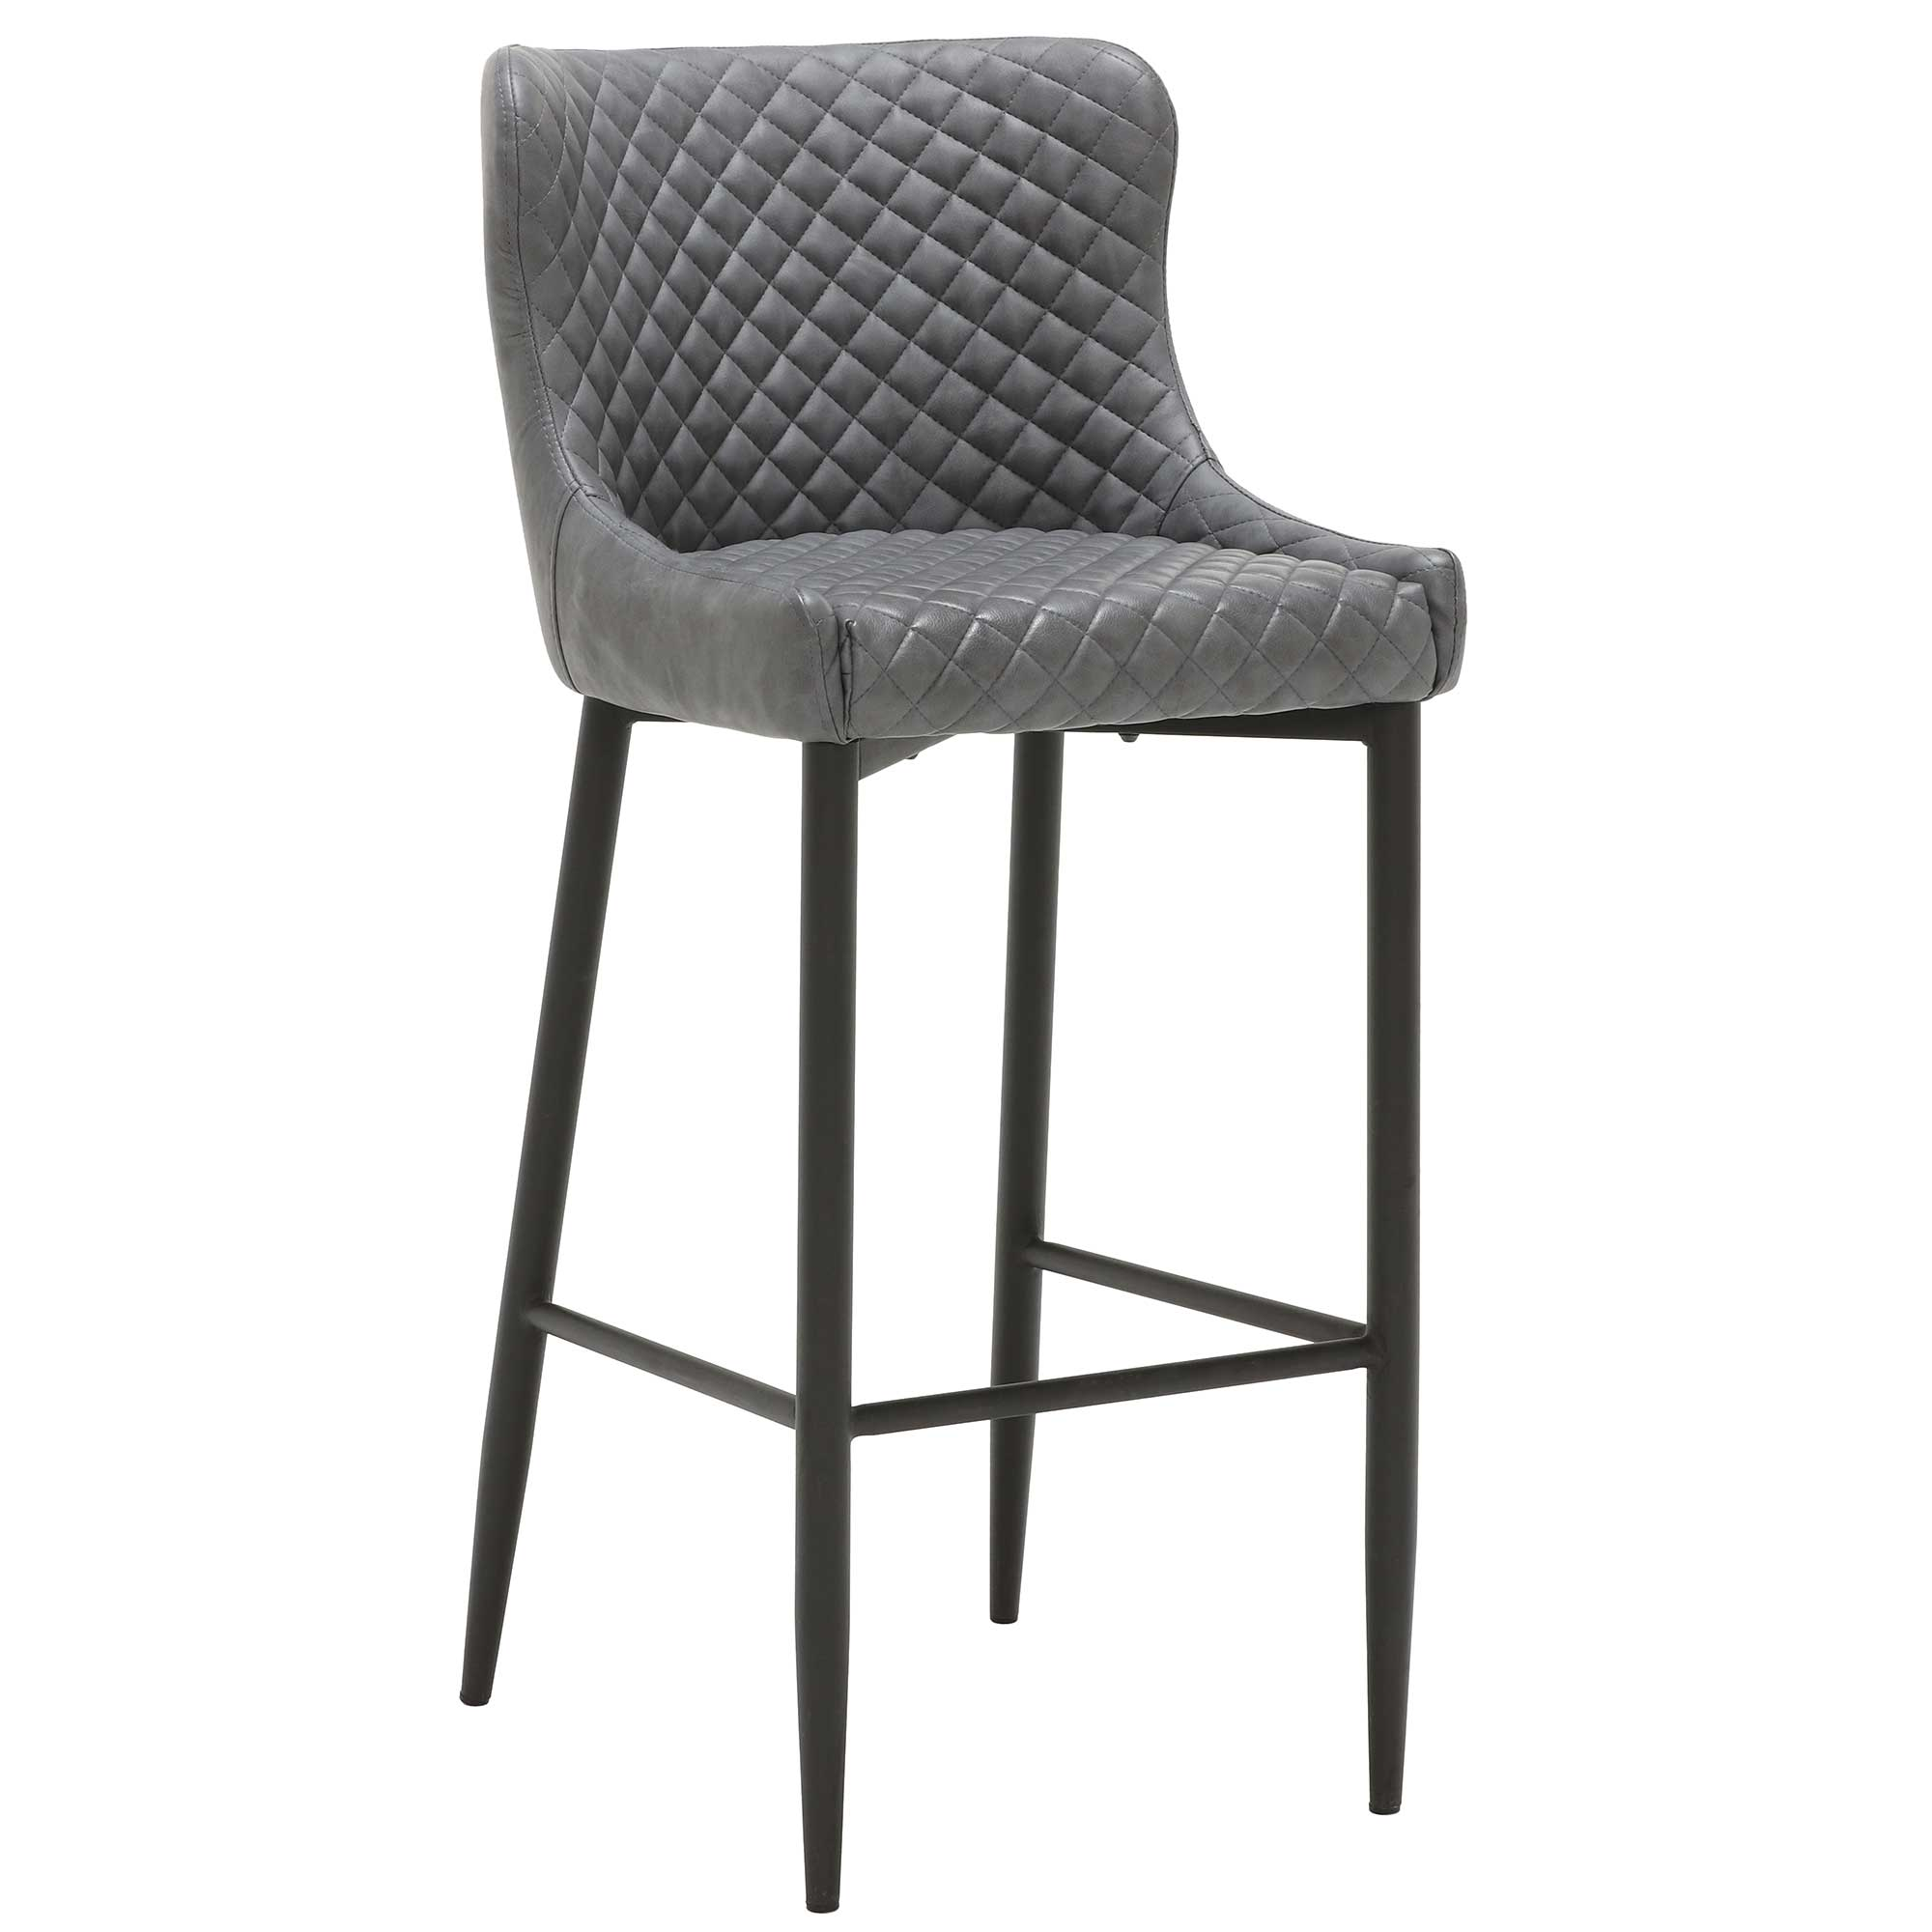 UPHOLSTERED BAR STOOL Gray Faux Leather